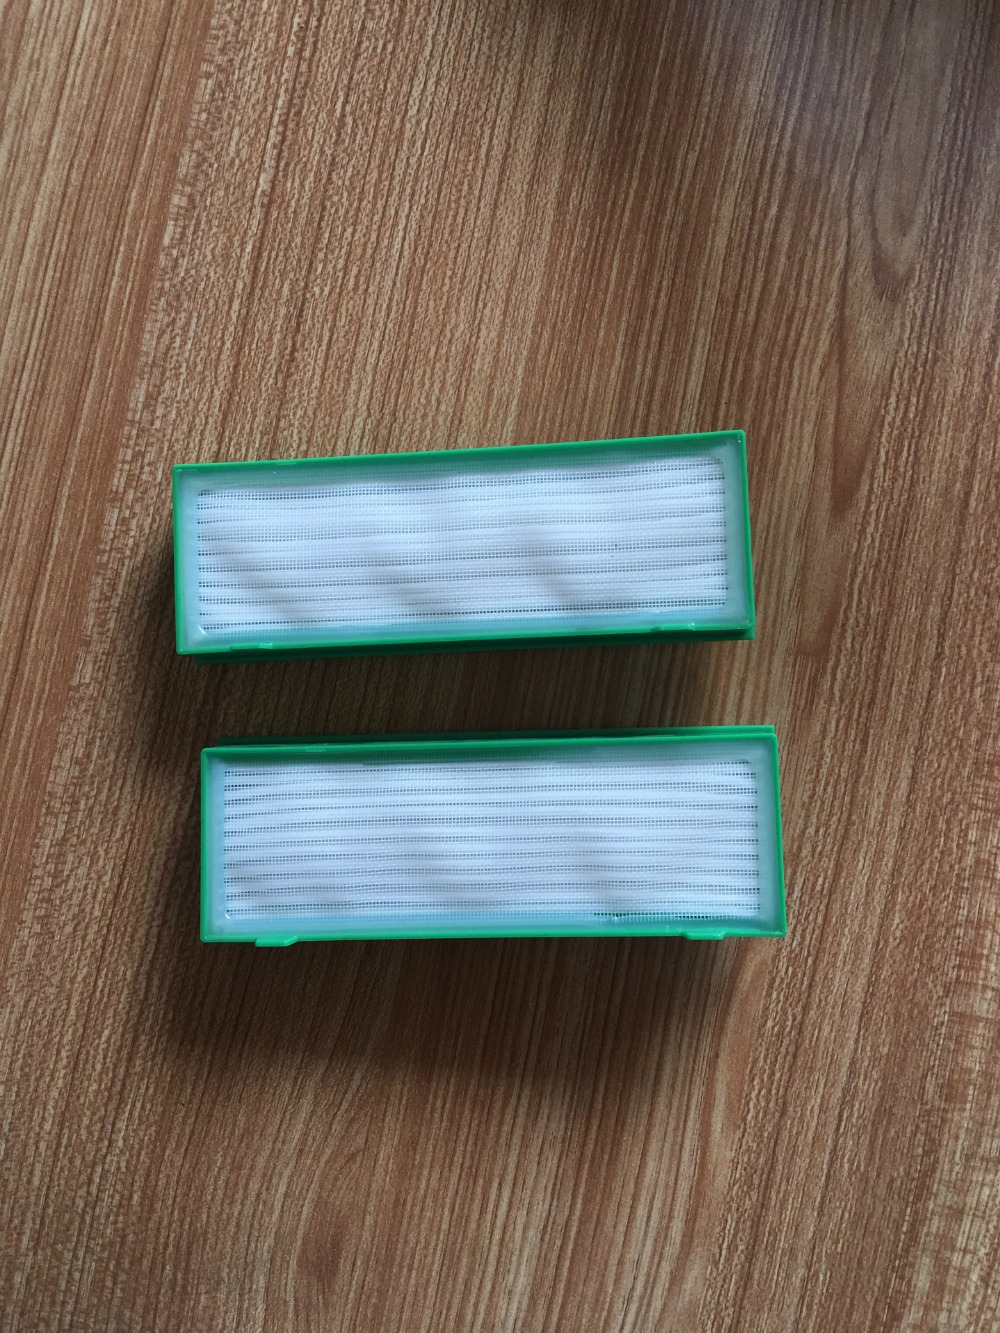 2 pcs Robot Vacuum Cleaner Parts HEPA Filter for Vorwerk Kobold VR200 VR-200 replacement robot vacuum cleaner hepa filter for lg vr65710 vr6260lvm vr6270lvm robotisc cleaner